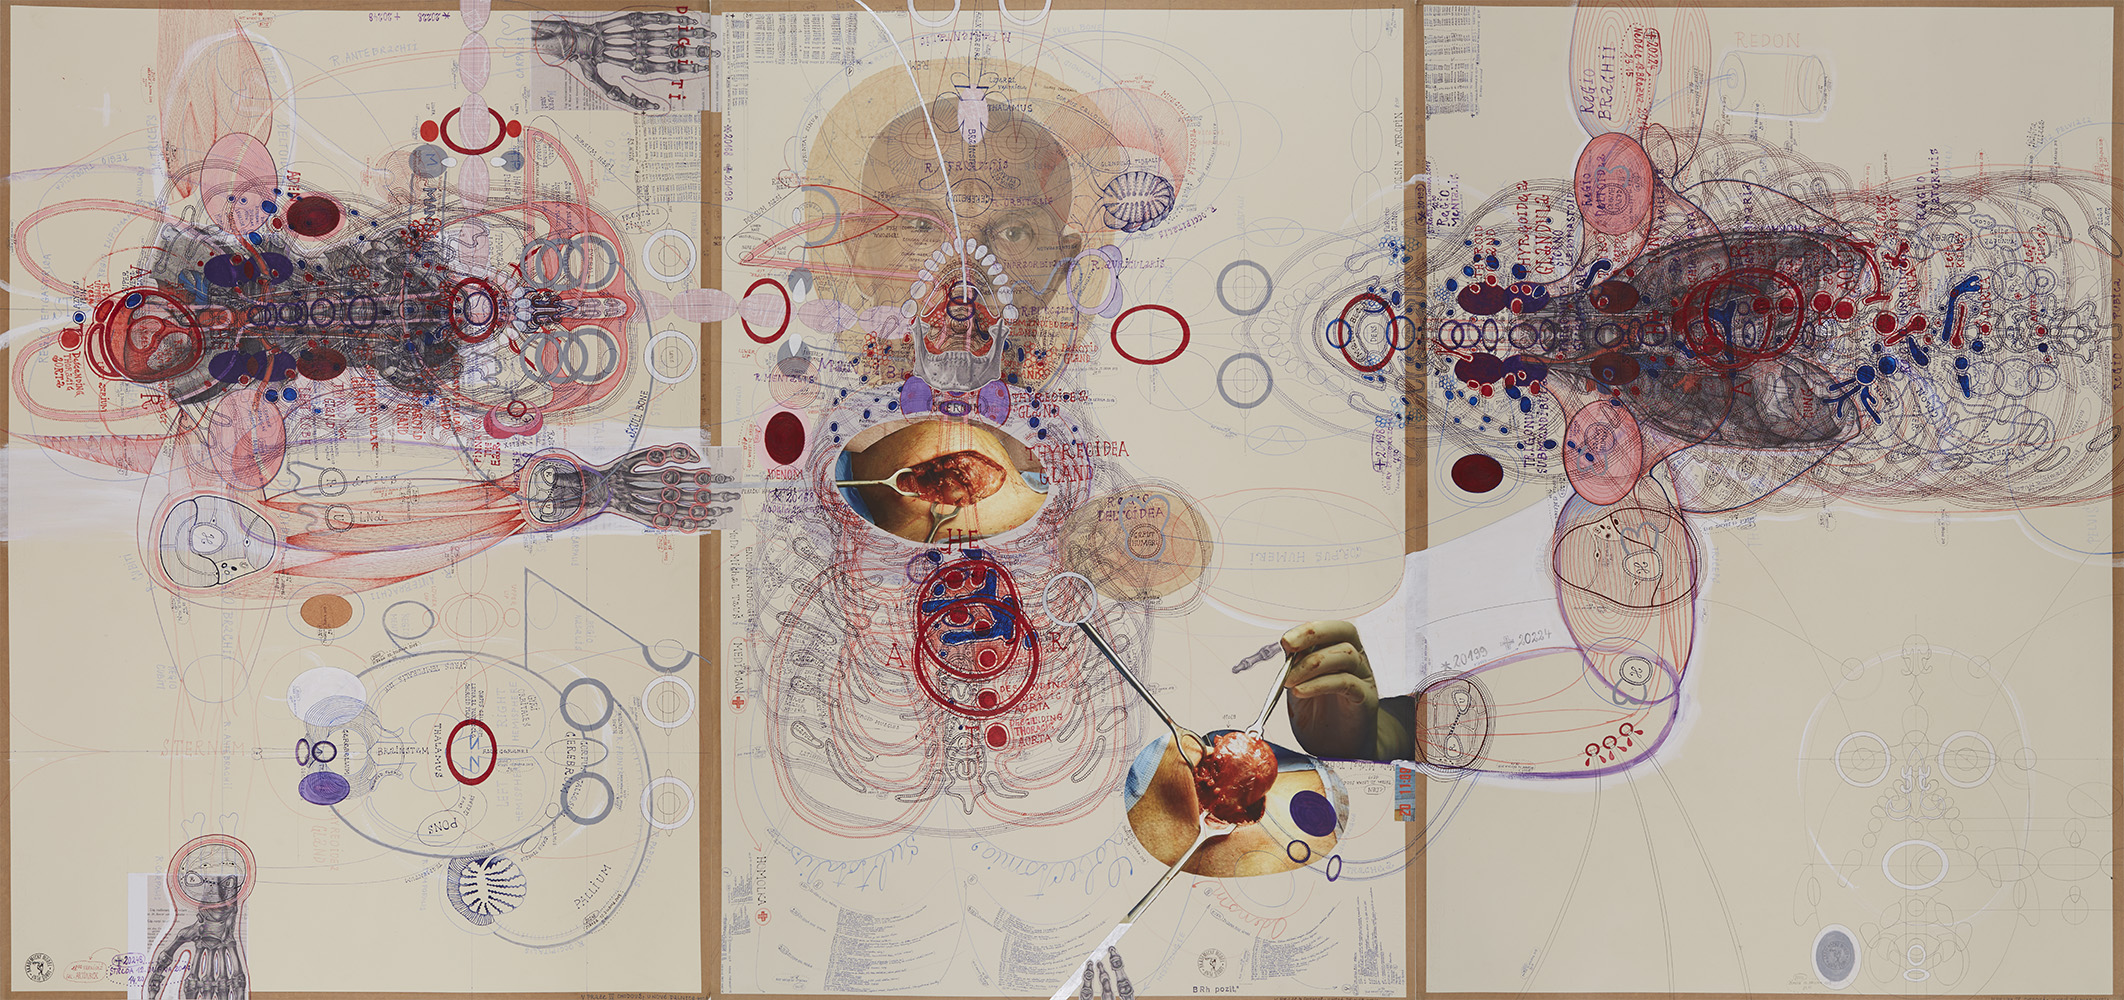 Luboš Plný, Lobectomia Subtotalis, 2017, Ink, acrylic, collage on paper, 39.37 x 83.68 inches, 100 x 210 cm, LuP 62